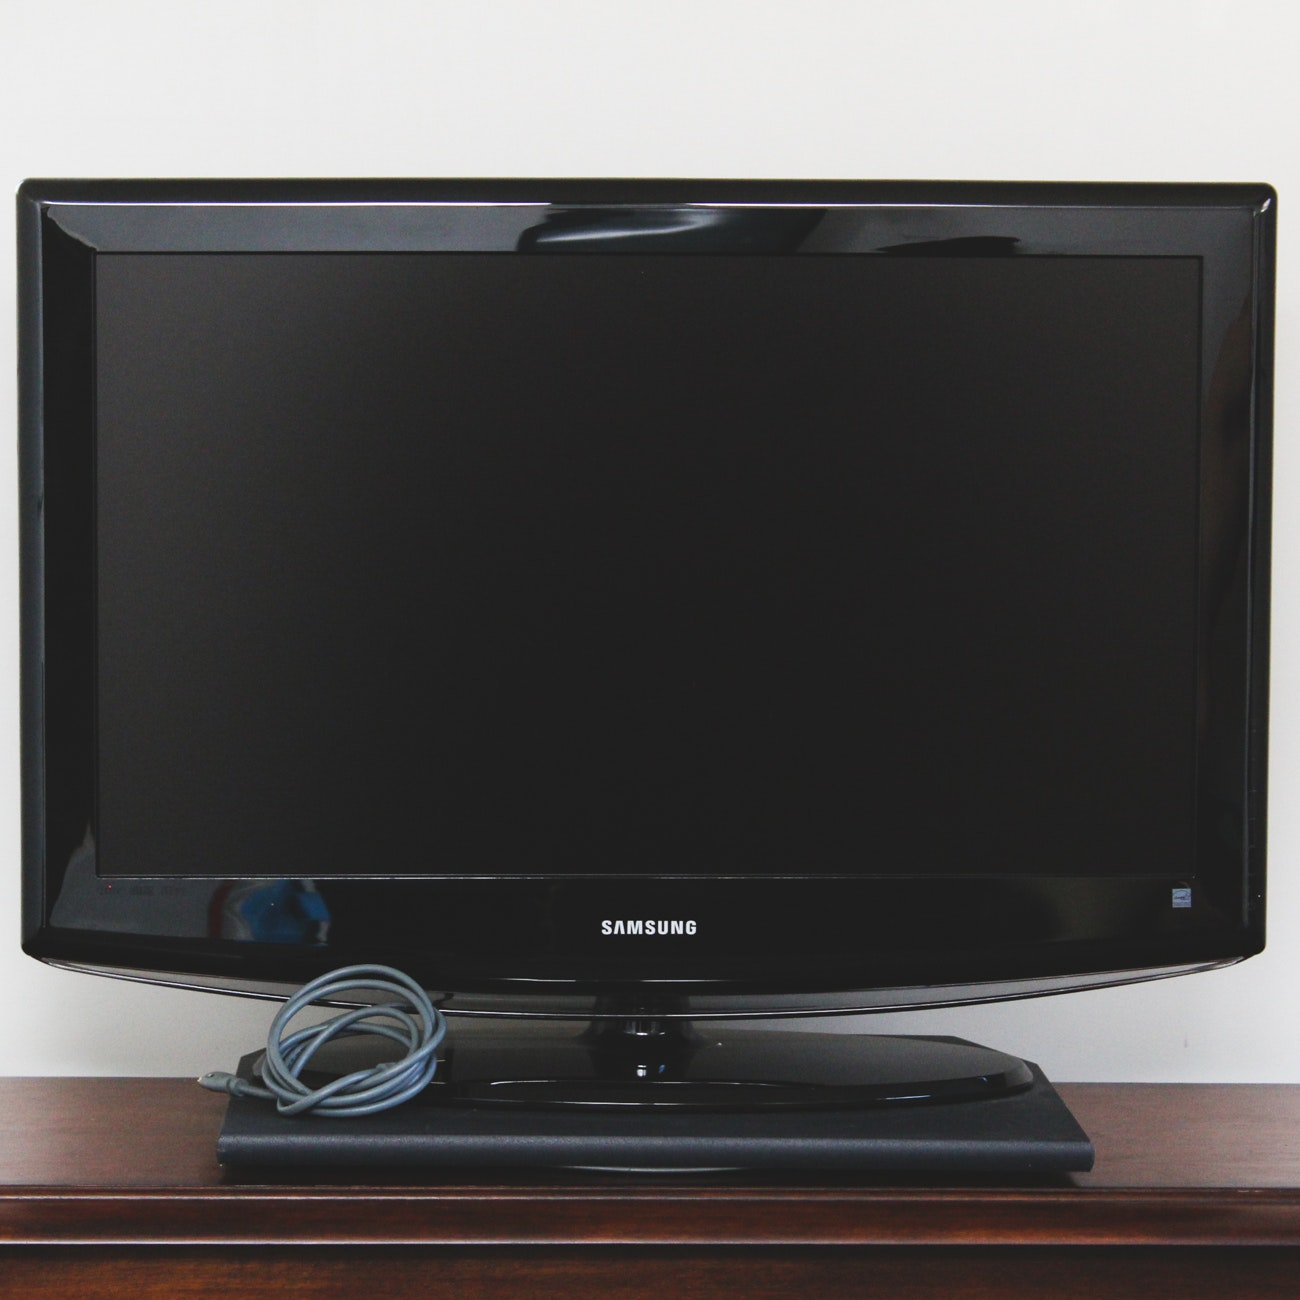 Samsung 32-Inch LCD HDTV with Swivel Base